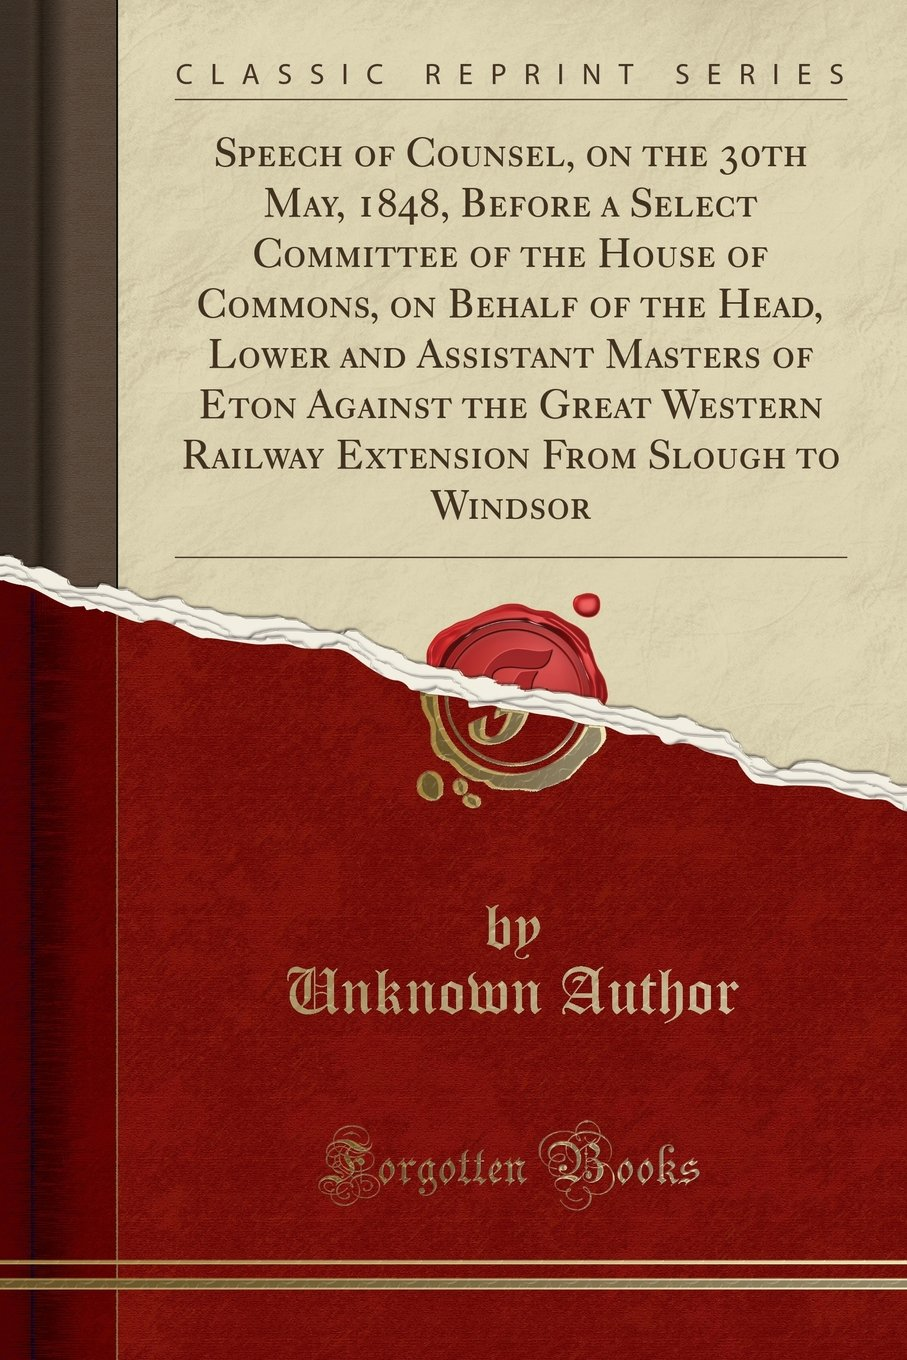 Read Online Speech of Counsel, on the 30th May, 1848, Before a Select Committee of the House of Commons, on Behalf of the Head, Lower and Assistant Masters of ... From Slough to Windsor (Classic Reprint) PDF